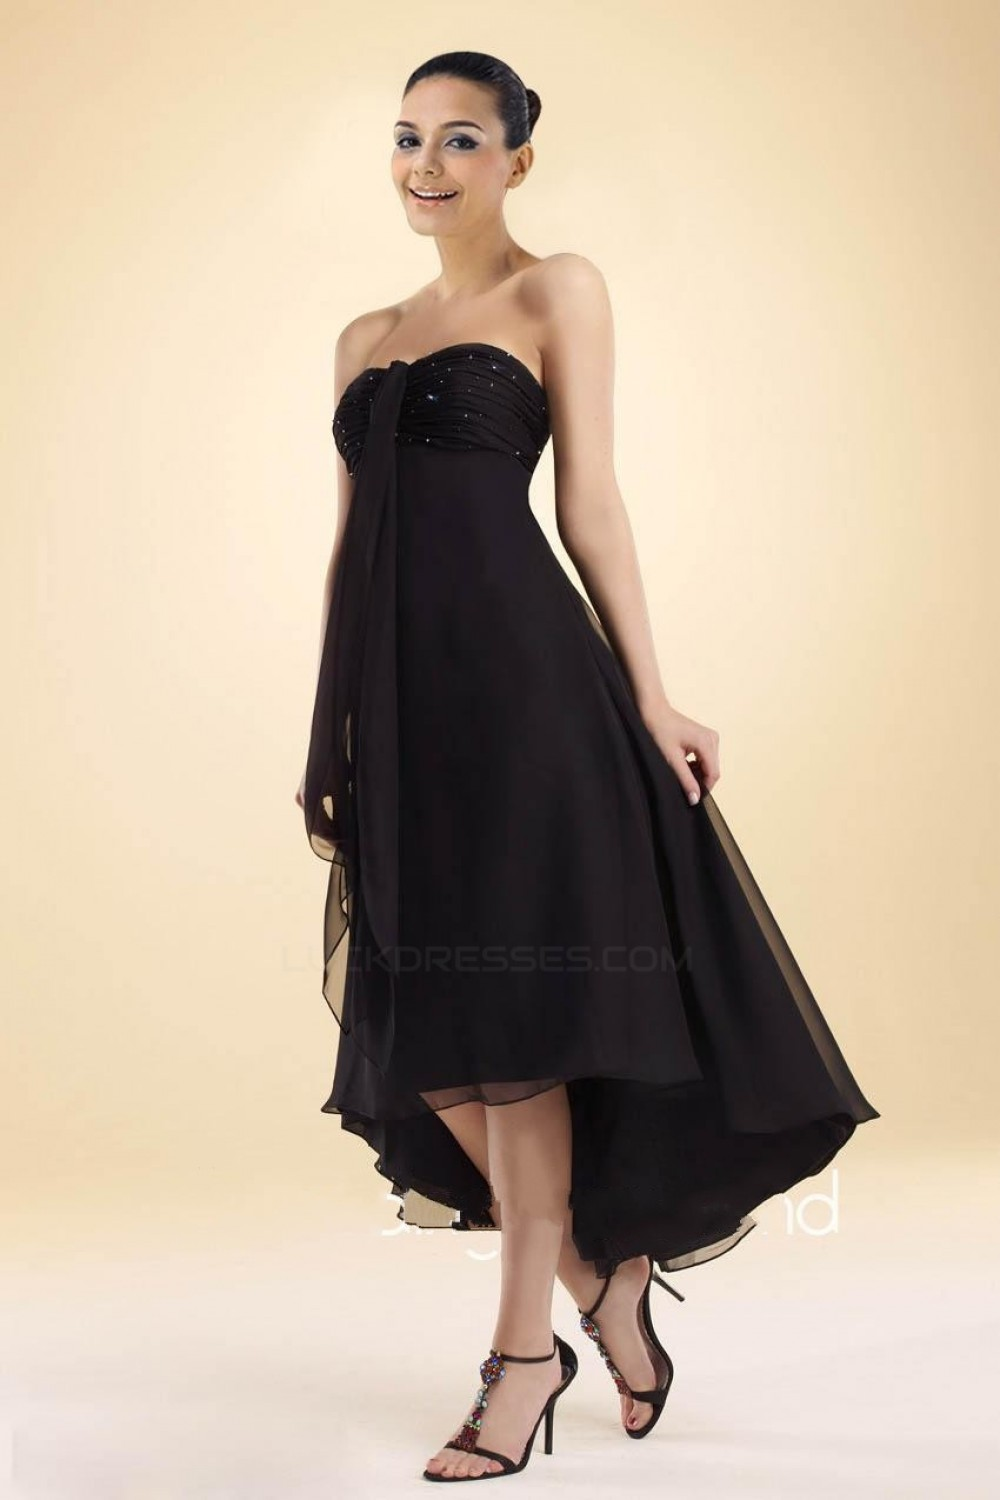 Black Strapless Cocktail Dress for a Party